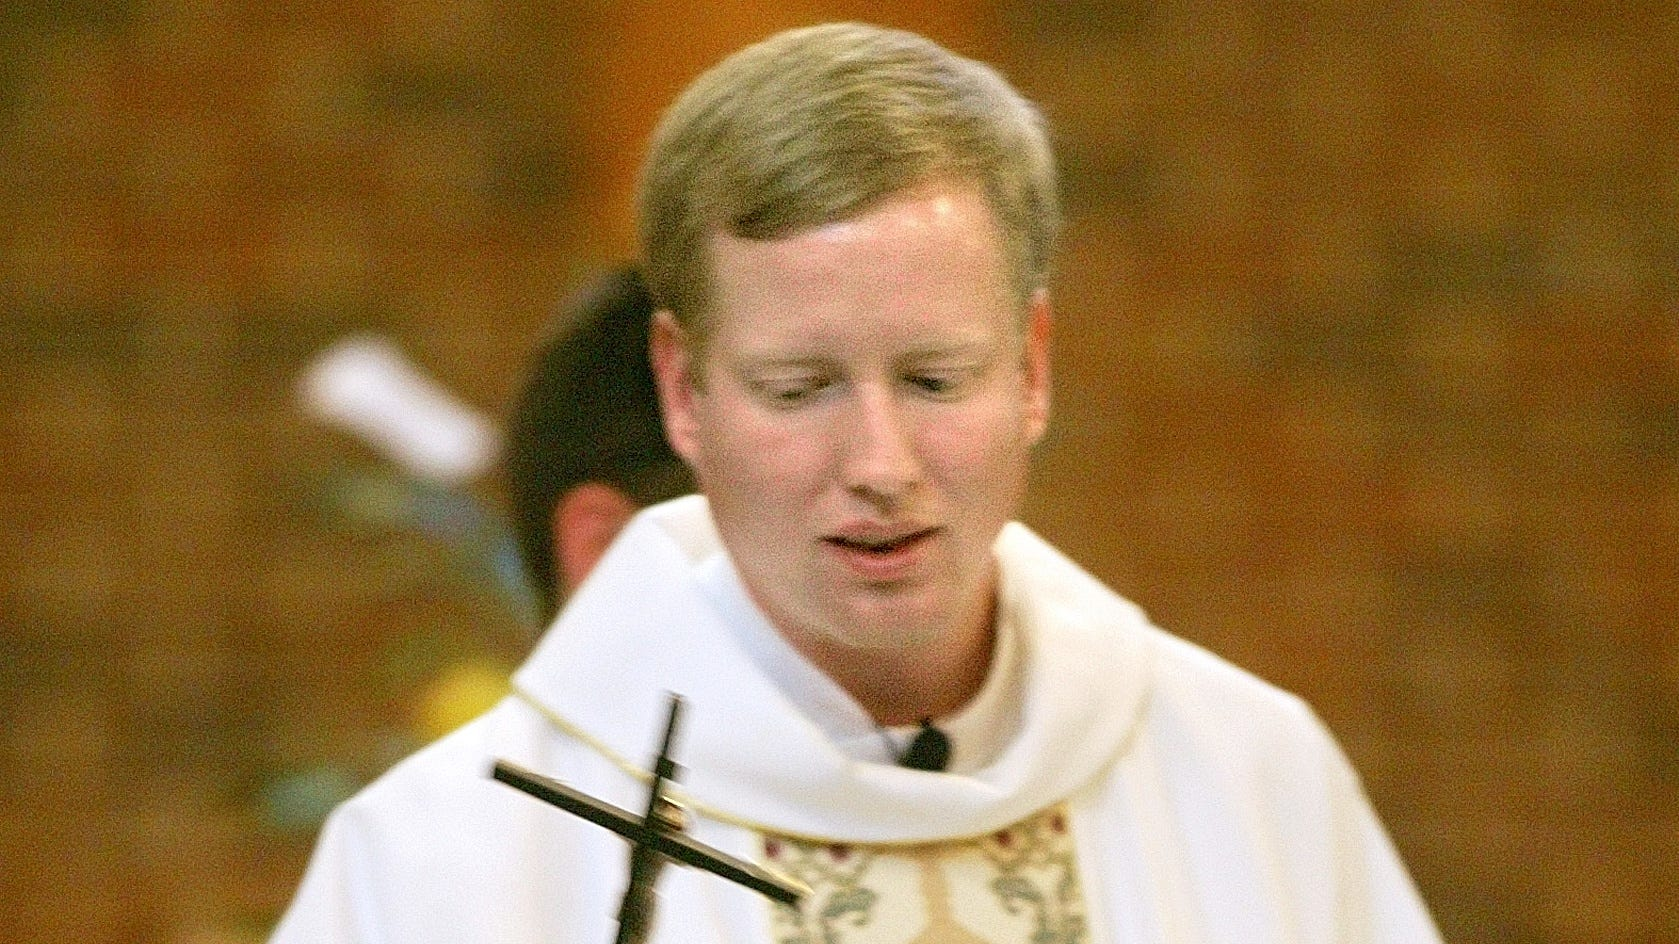 State attorney: Lawmen will 'look into' priest dismissed by Tallahassee Catholic diocese